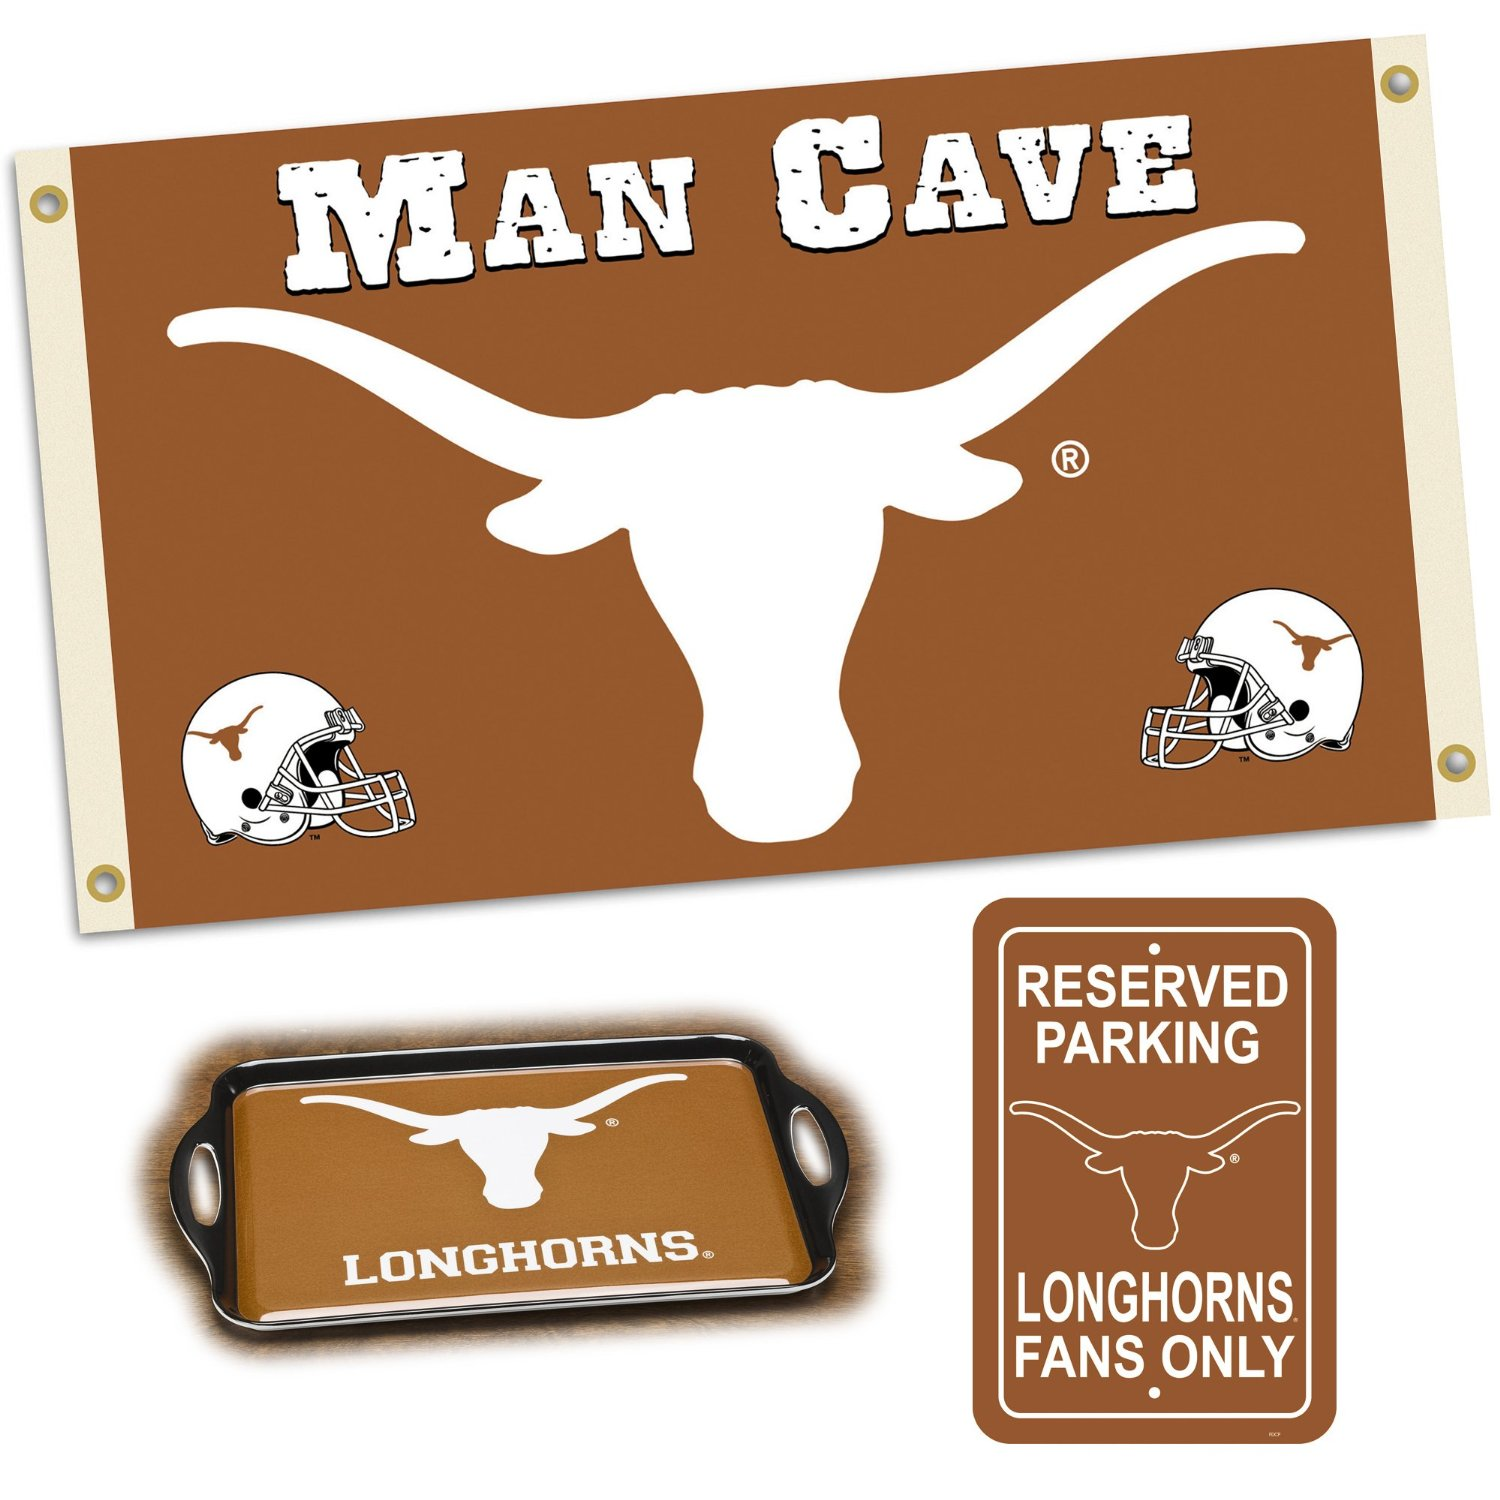 Man Cave Gifts Reviews : Ncaa texas longhorns man cave gift pack check back soon